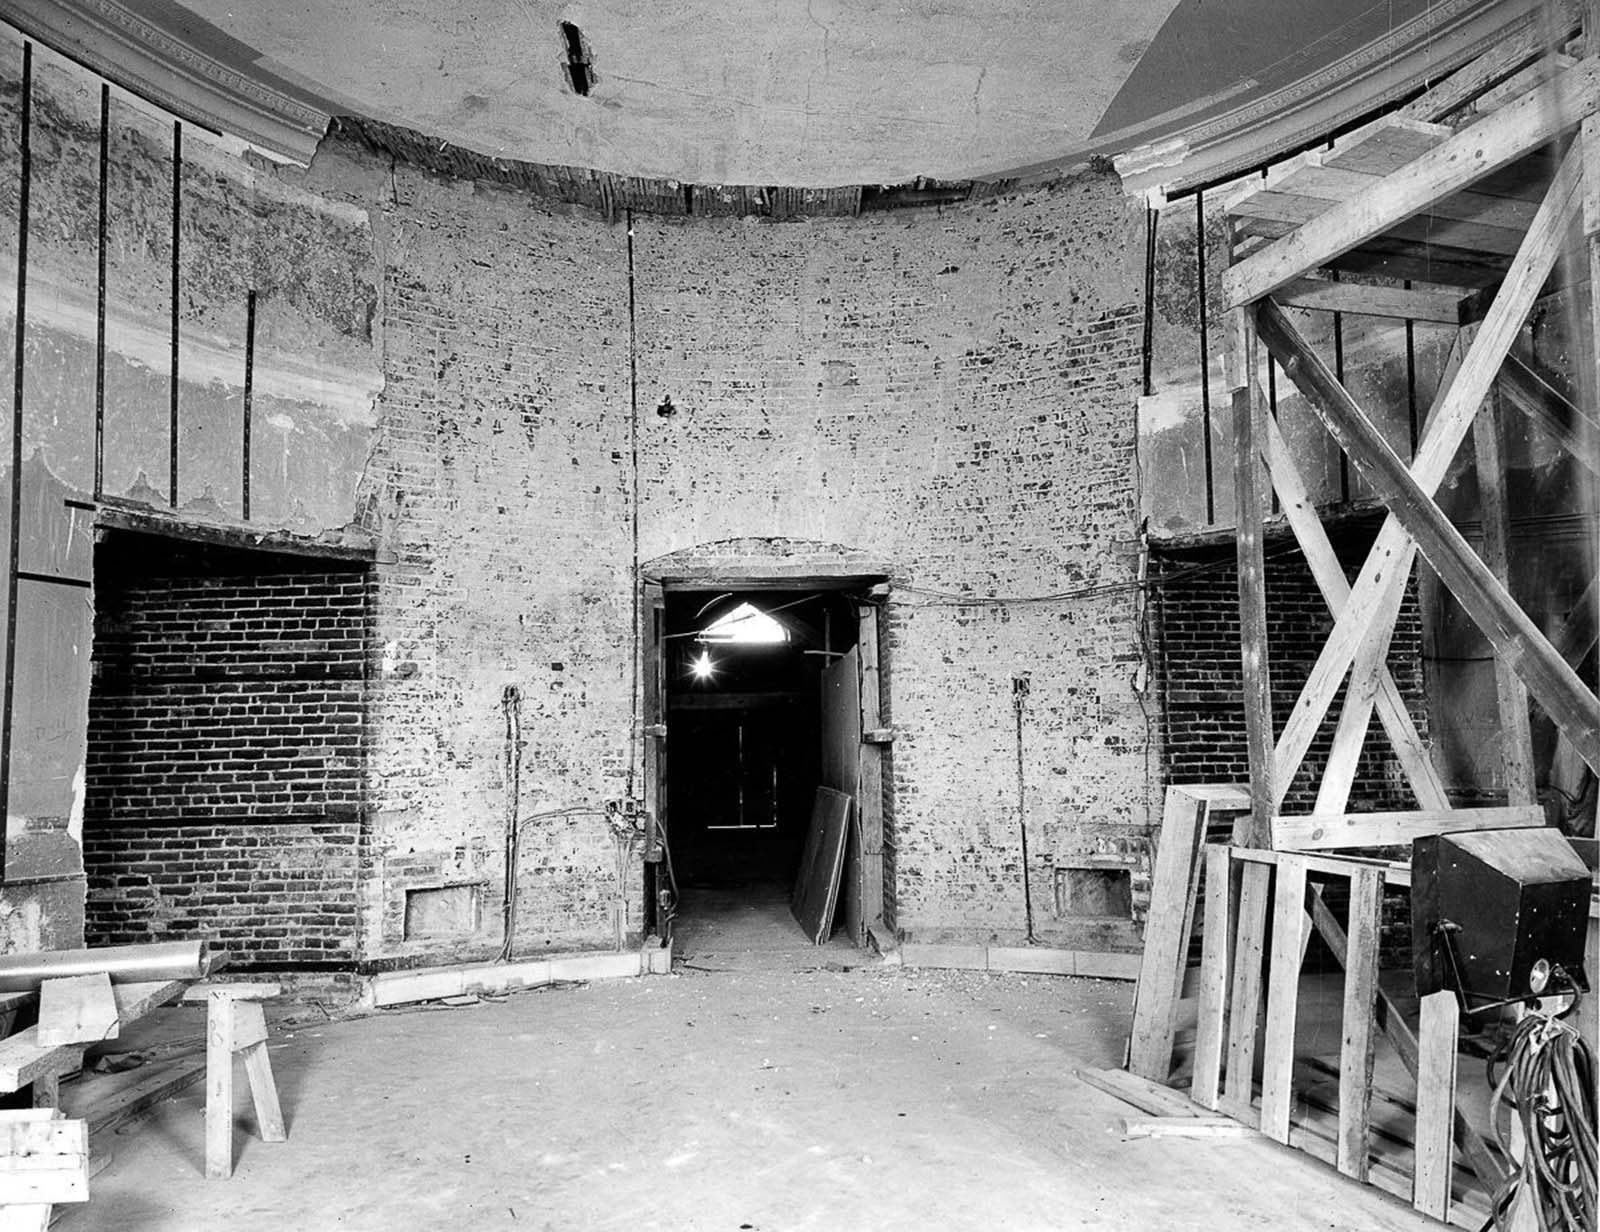 Renovation work on the White House. 1950.